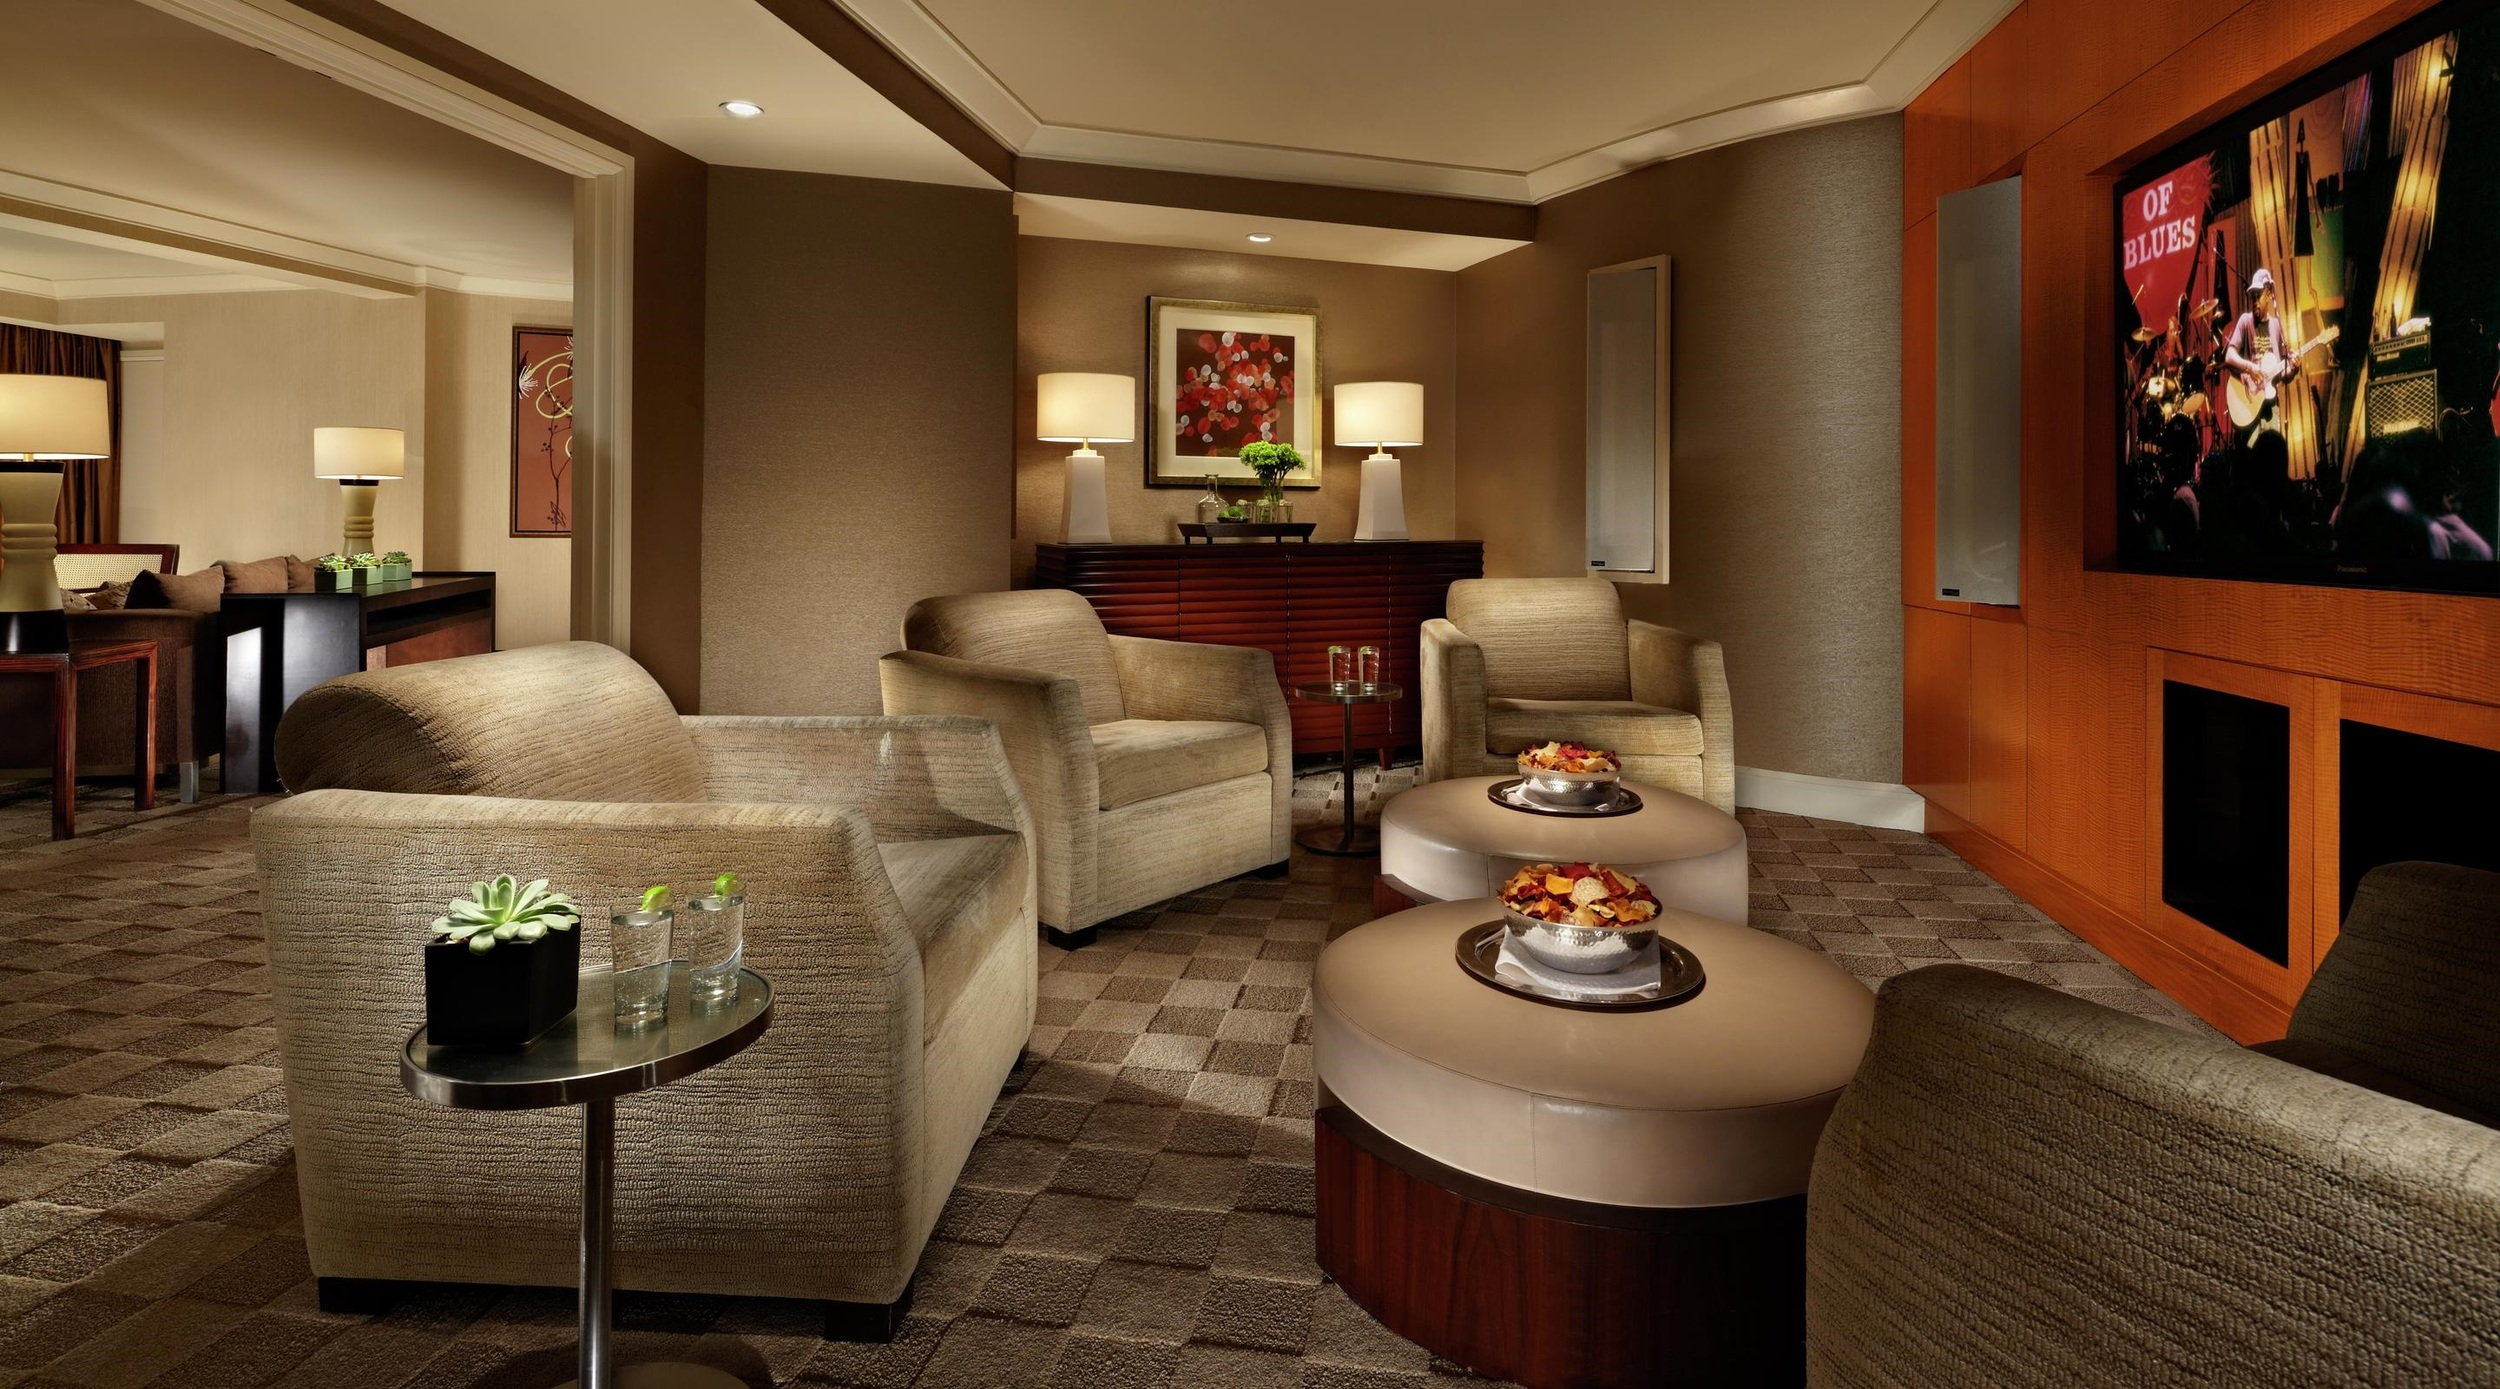 mandalay-bay-hotel-room-media-suite-media-room.jpg